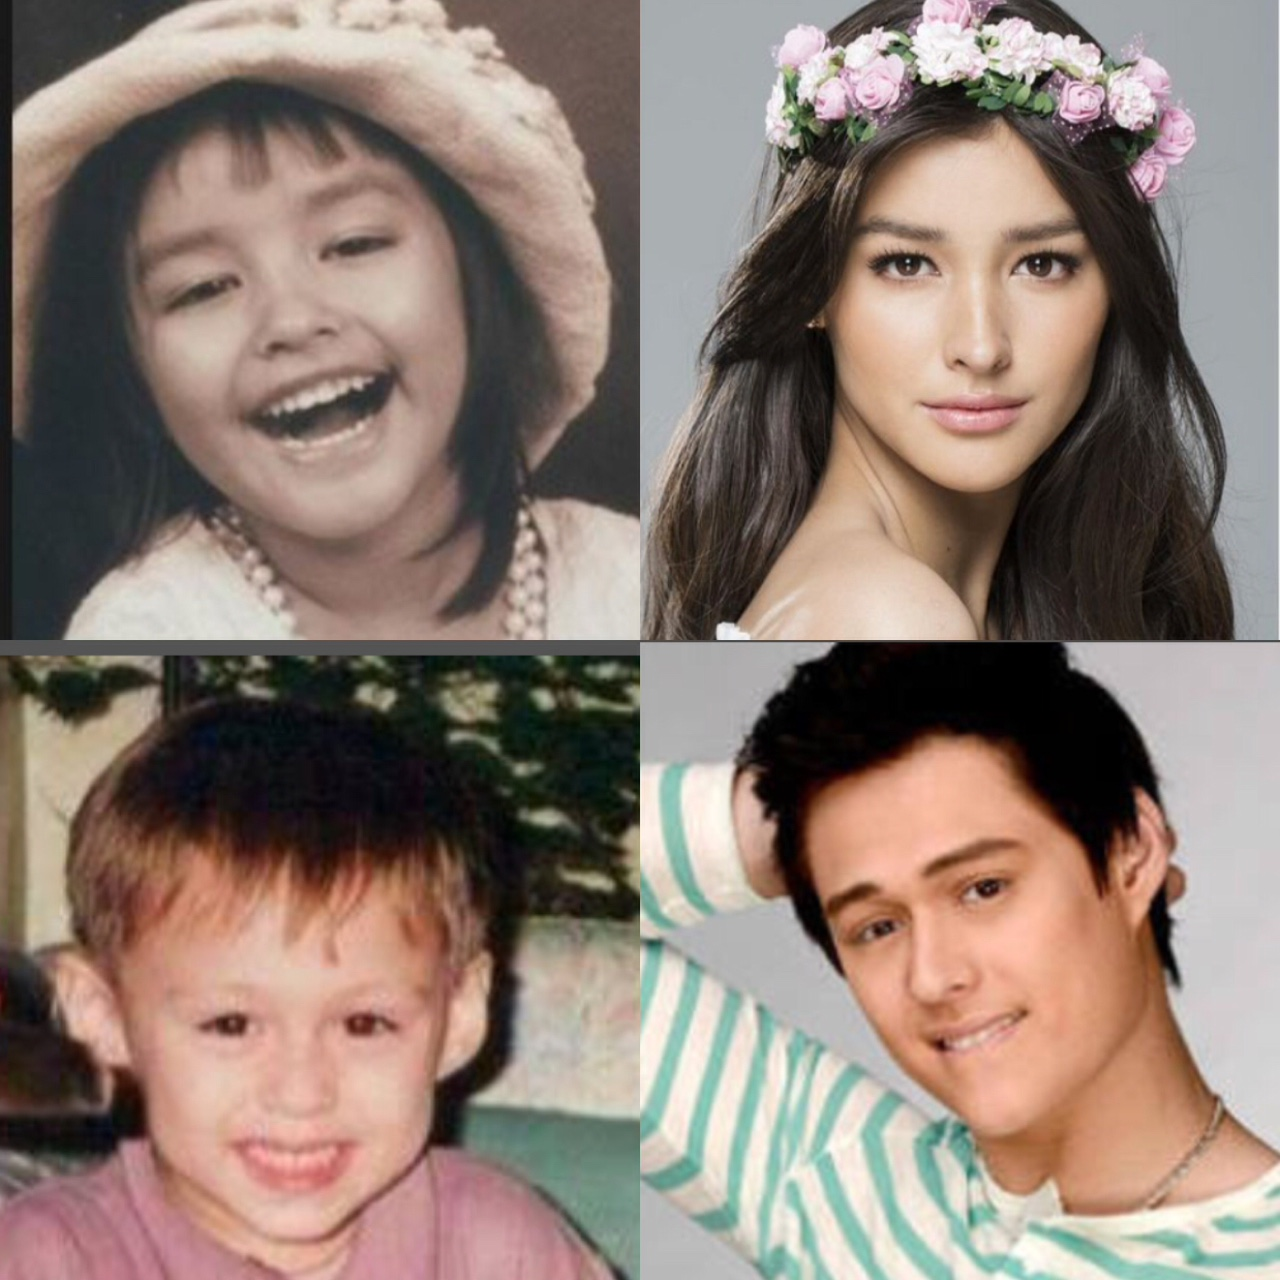 liza and enrique gil dating Sweetheart at 11:43 pm kathryn bernardo na she's dating the gangster na hango the bet kasama ang cast members na sina enrique gil, liza soberano.